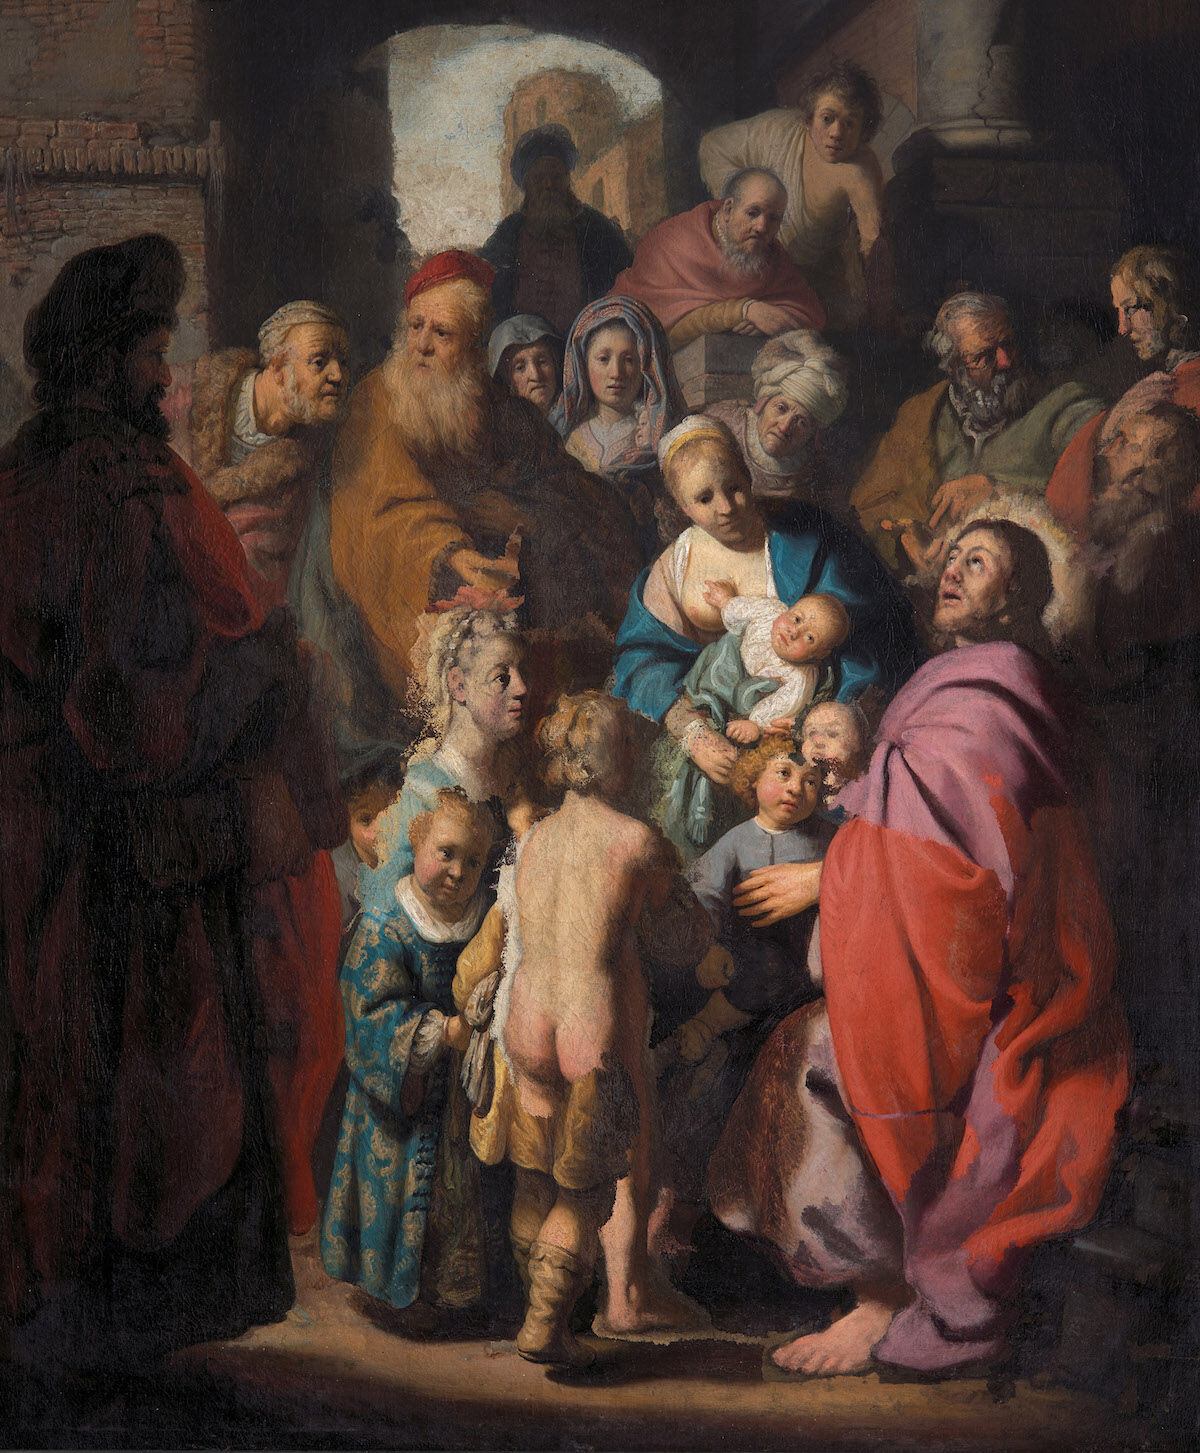 Rembrandt and others, Let the Little Children Come to Me, ca. 1627–28 and later. Courtesy Jan Six Fine Art, Amsterdam.